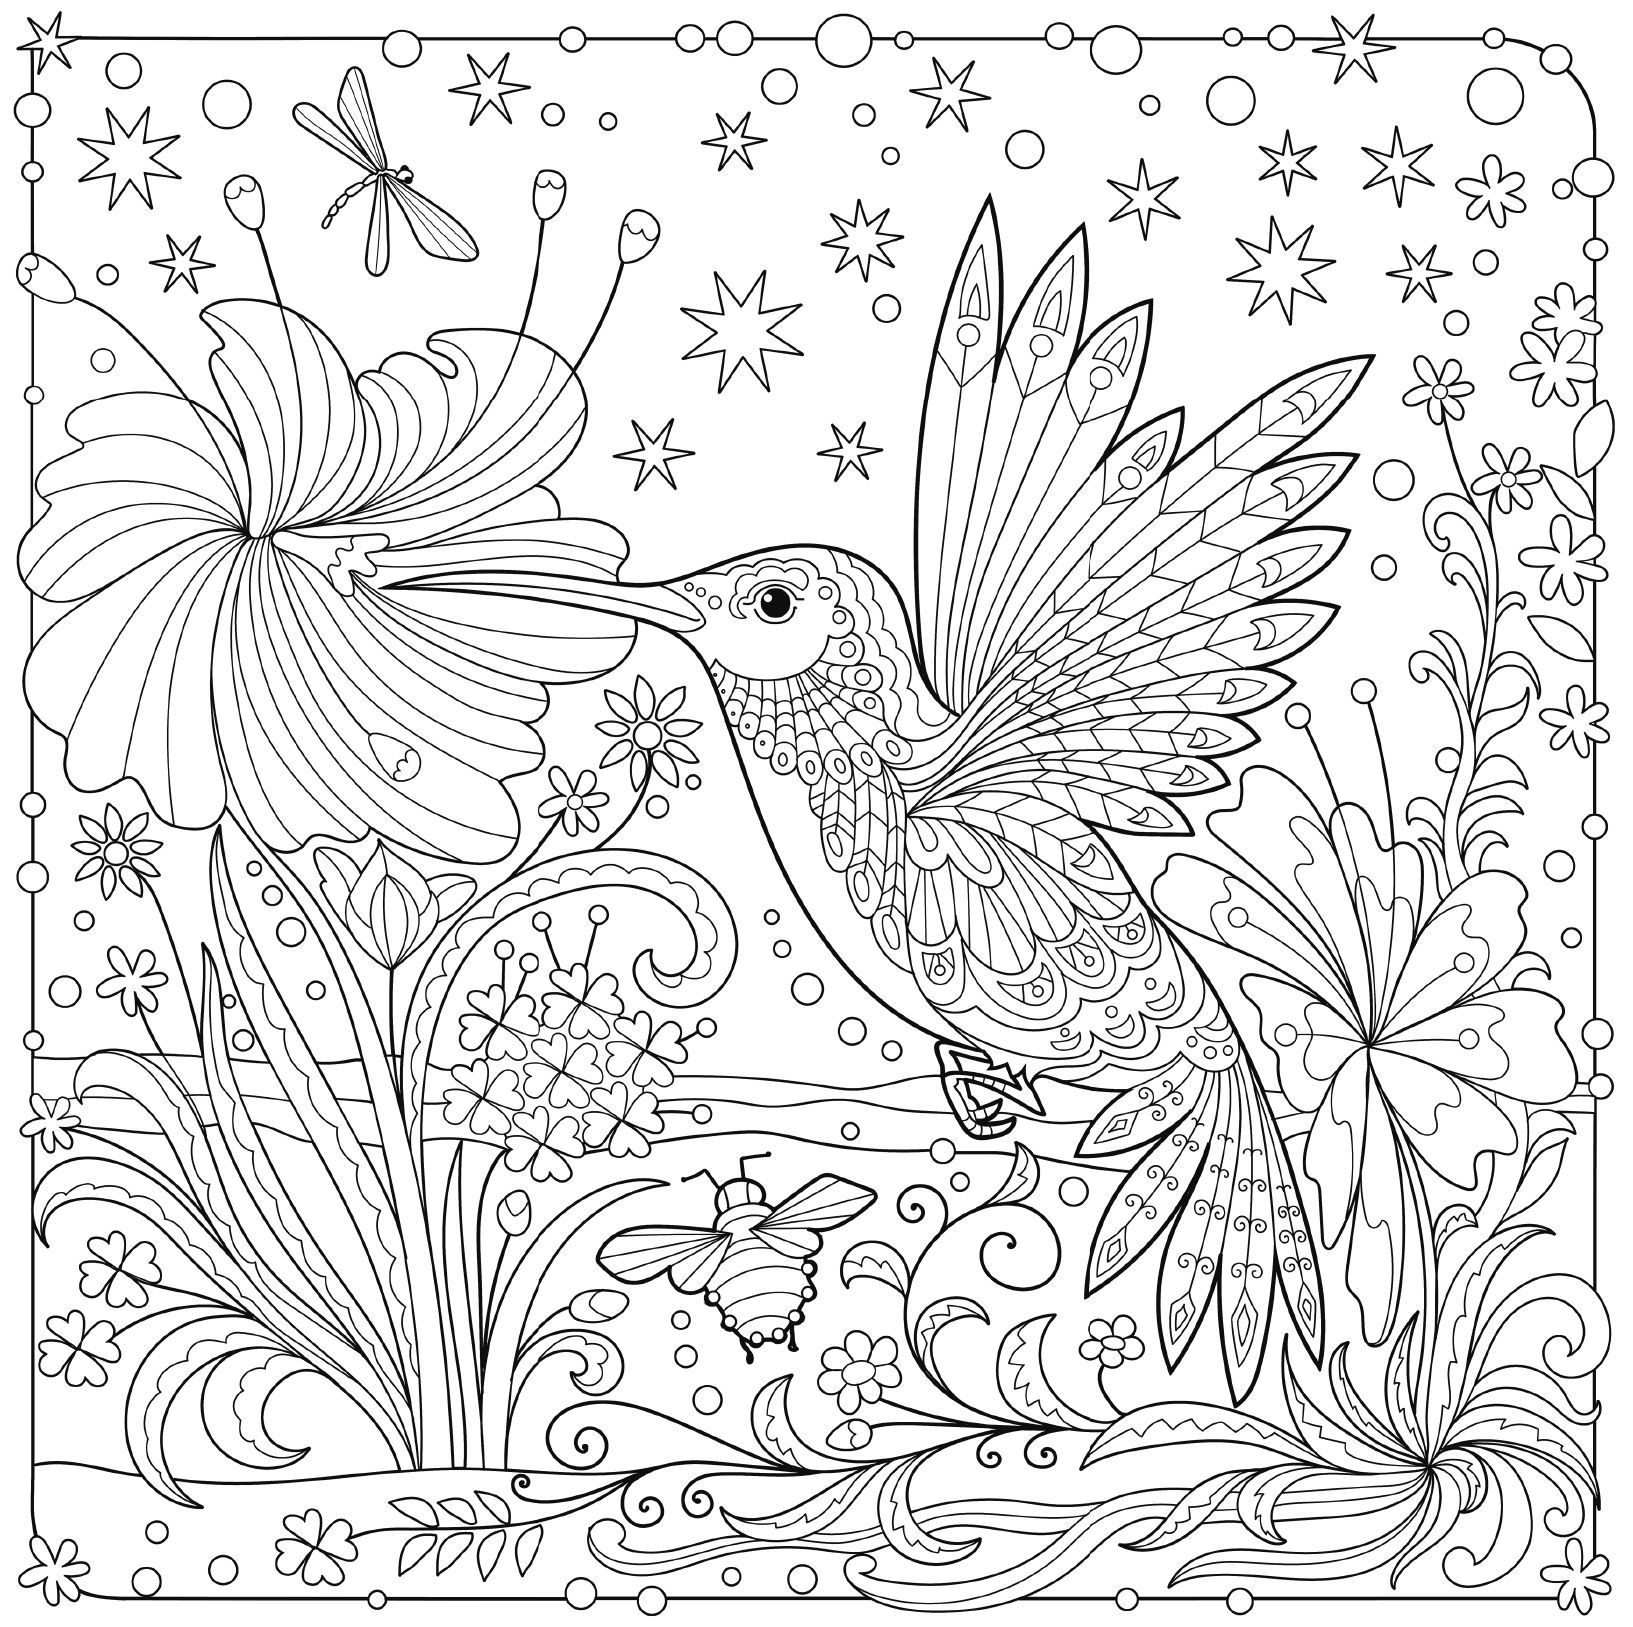 free printable hummingbird coloring pages hummingbird coloring page free printable coloring pages pages coloring hummingbird printable free